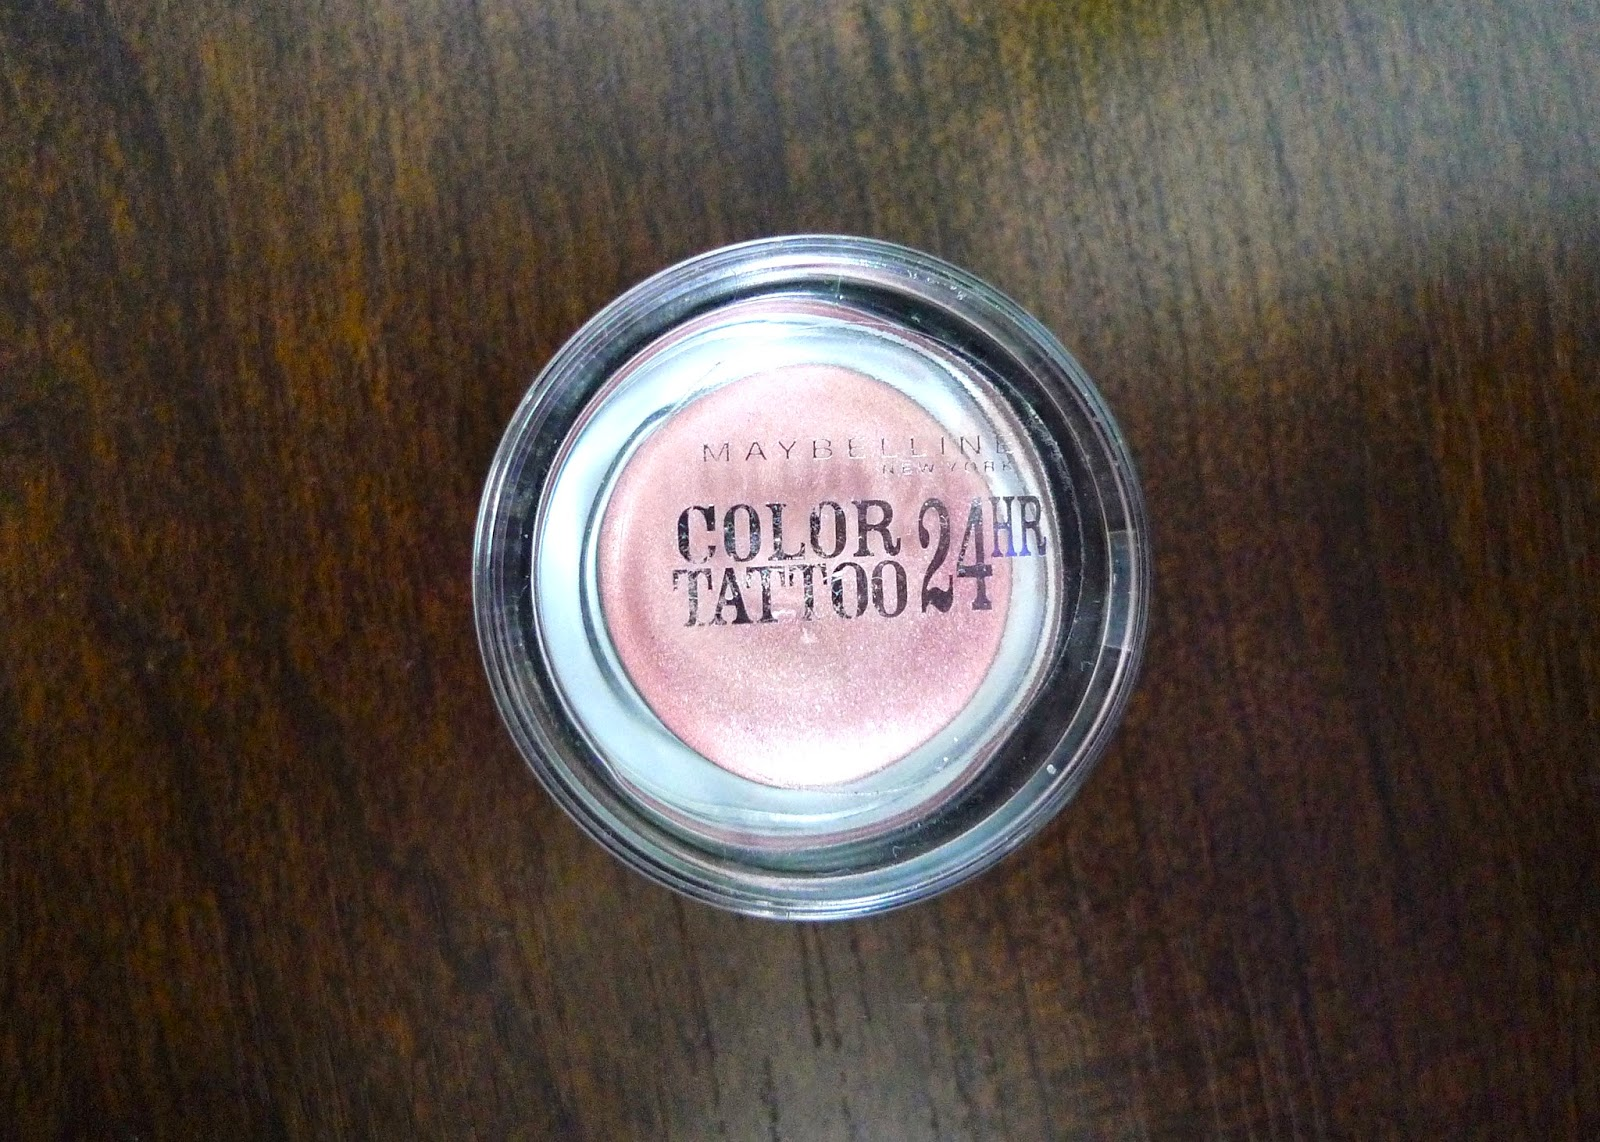 Maybelline Color Tattoo 24 hour Eyeshadow | Review